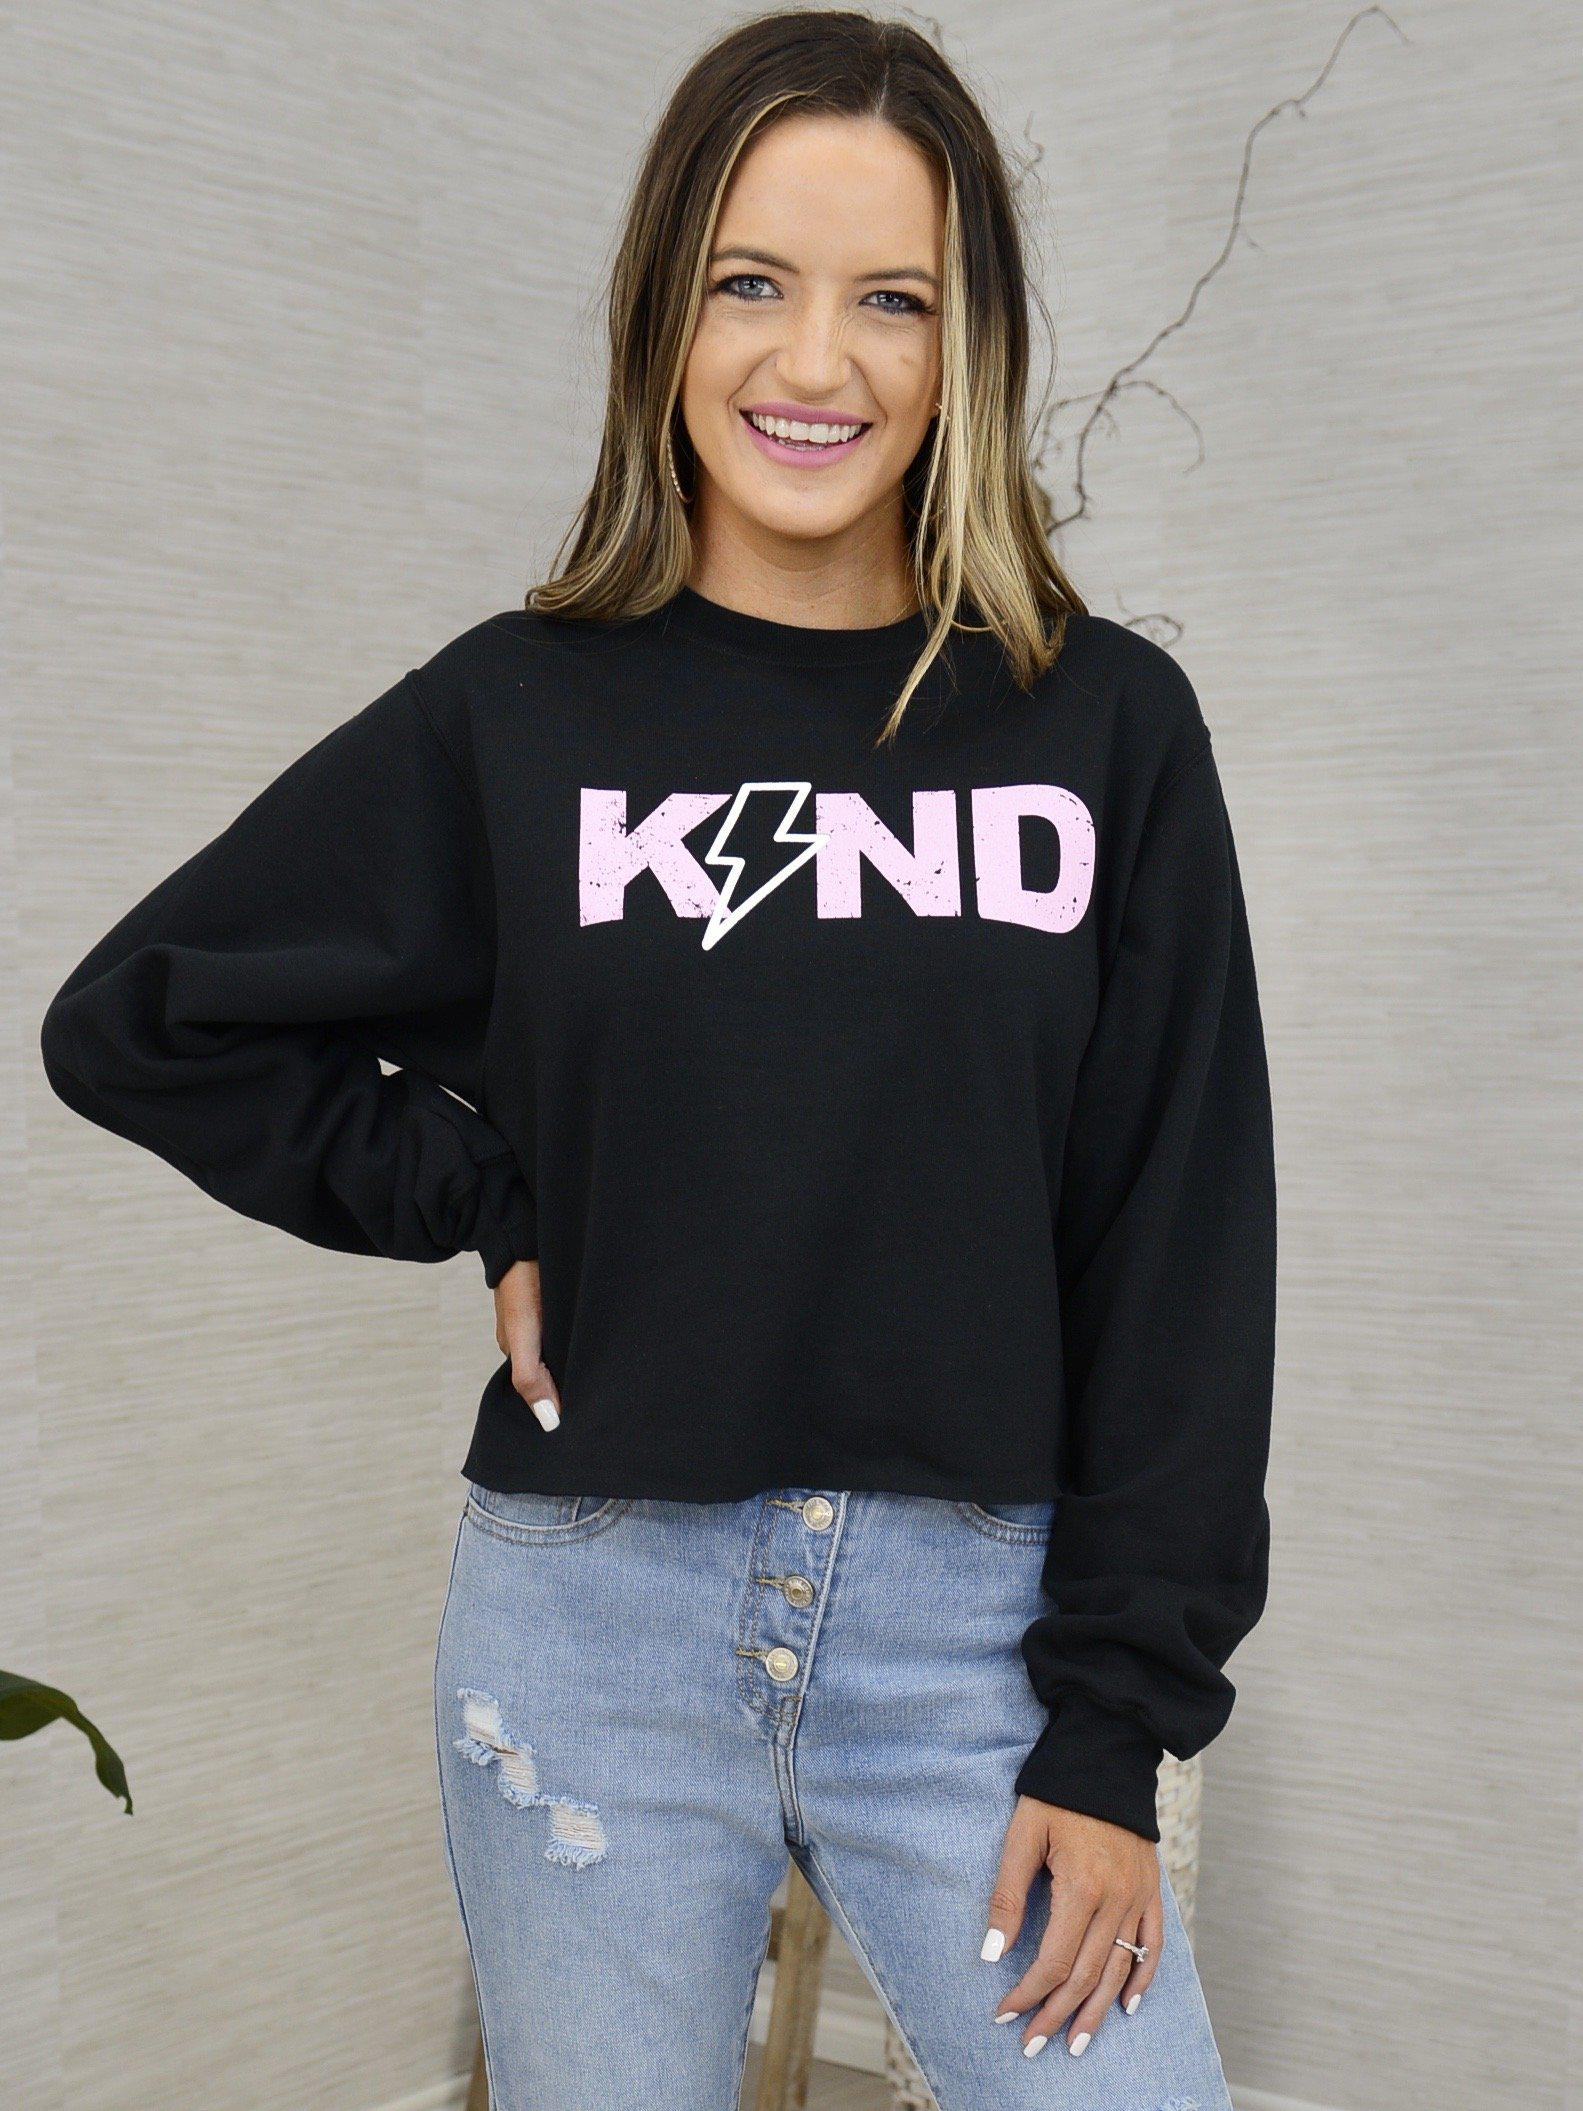 Kind Mind Top-Women's -New Arrivals-Runway Seven